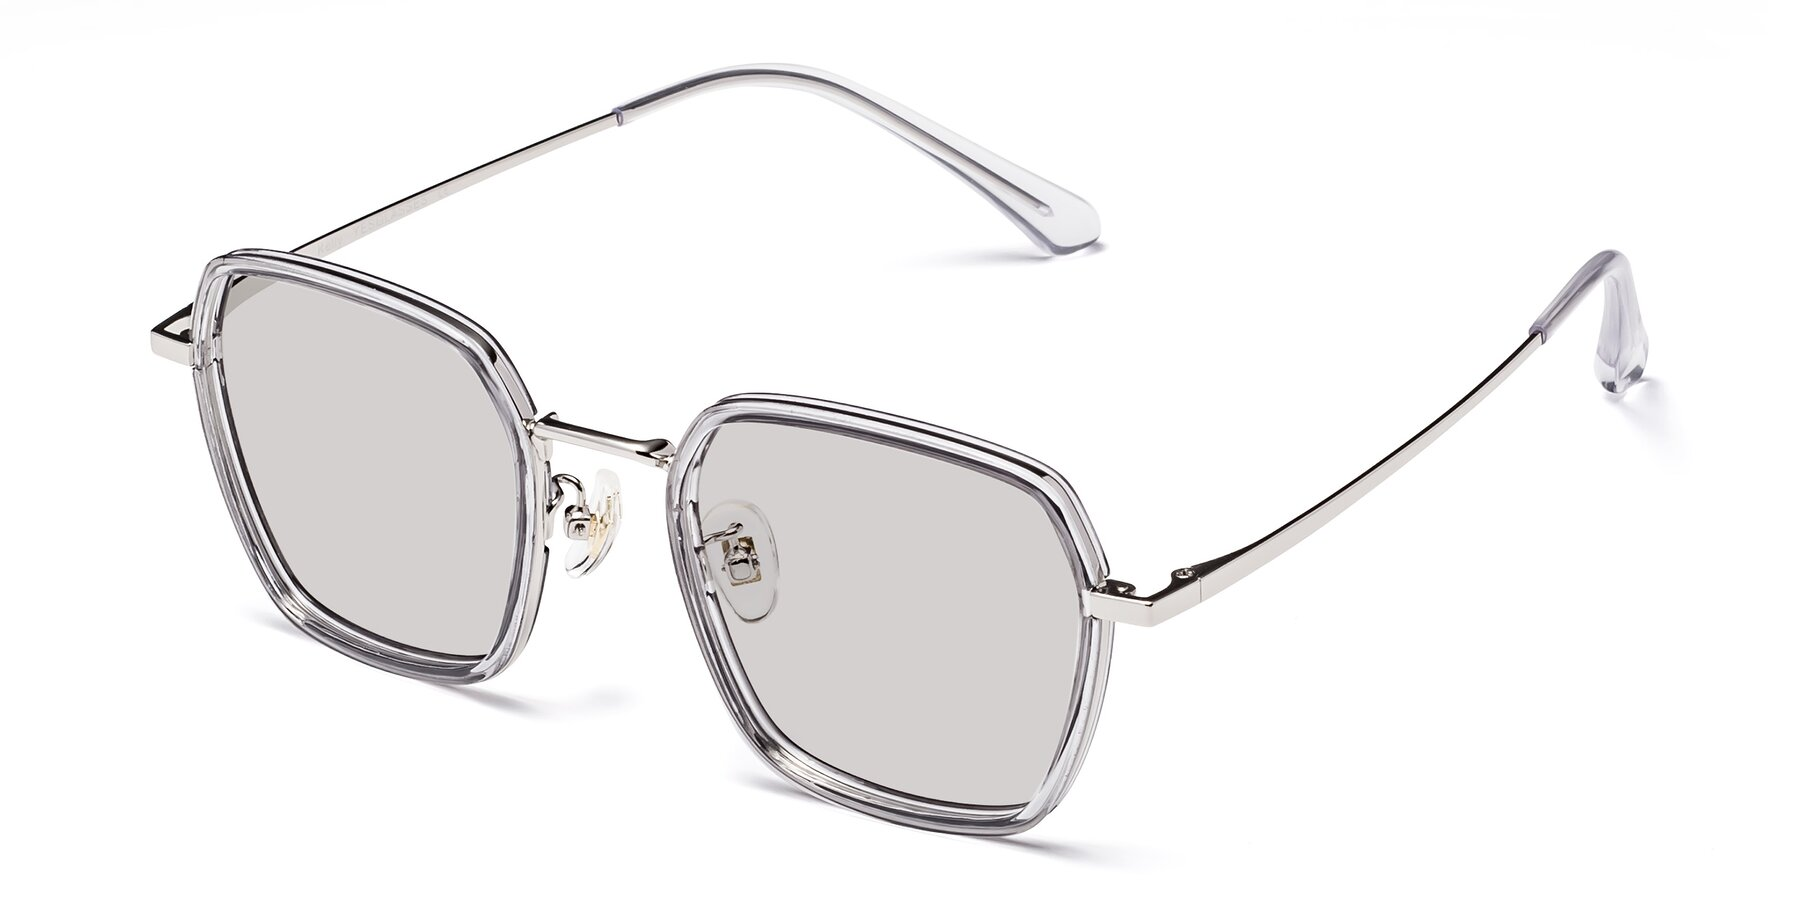 Angle of Kelly in Light Gray-Silver with Light Gray Tinted Lenses